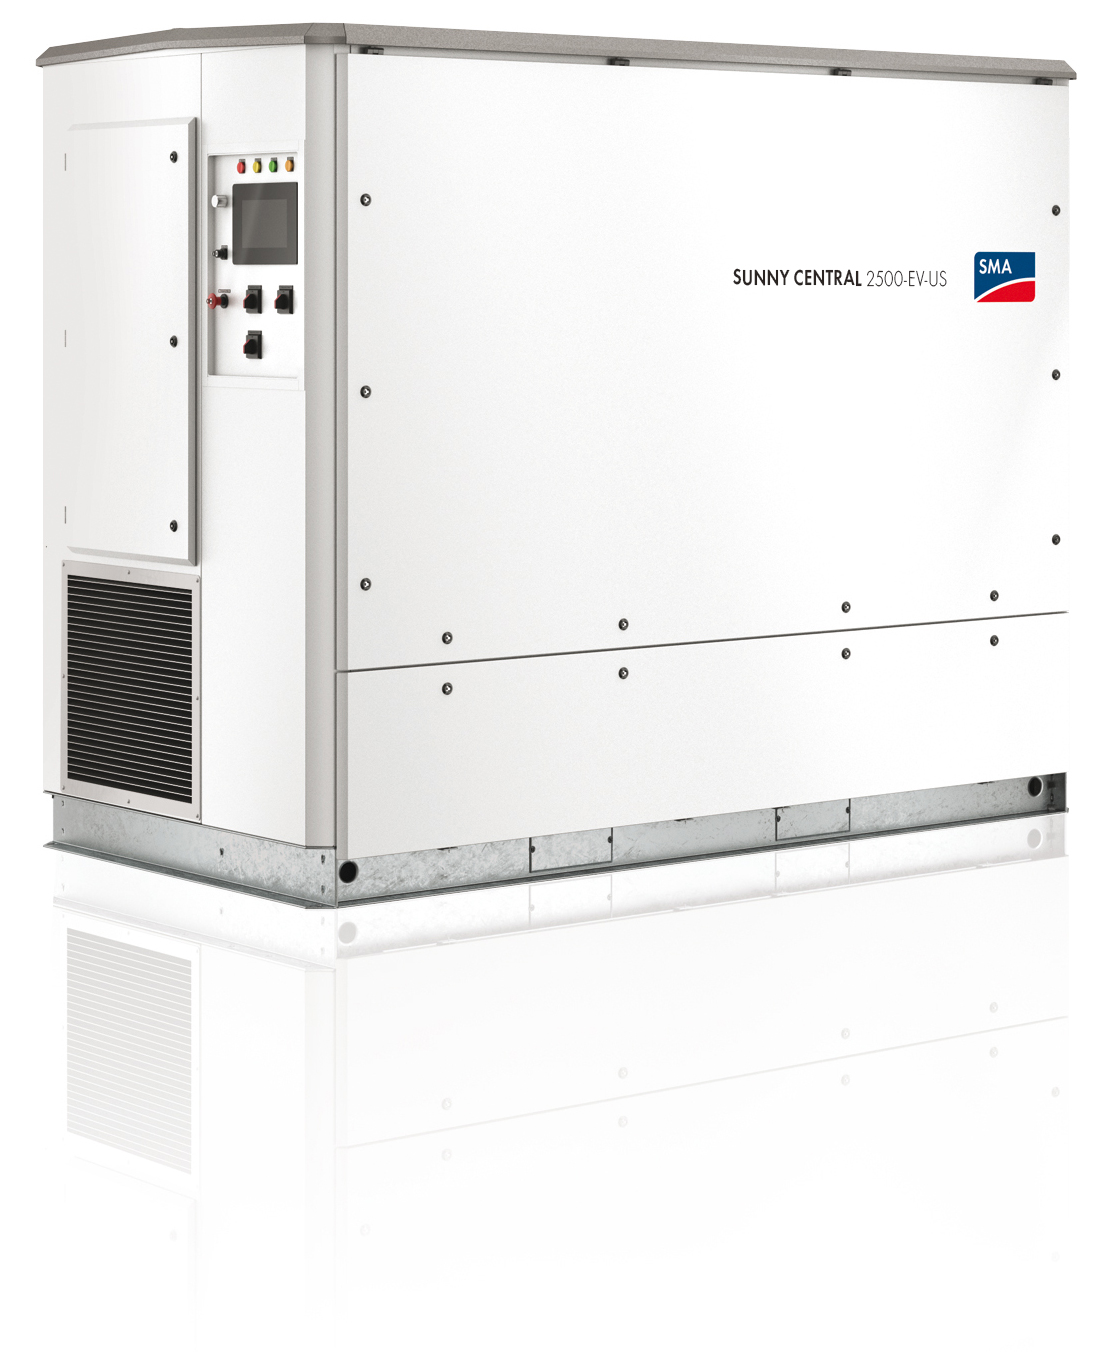 With the Sunny Central 2500-EV-US, SMA is the first manufacturer to have an inverter certified to UL 62109 by UL LLC.